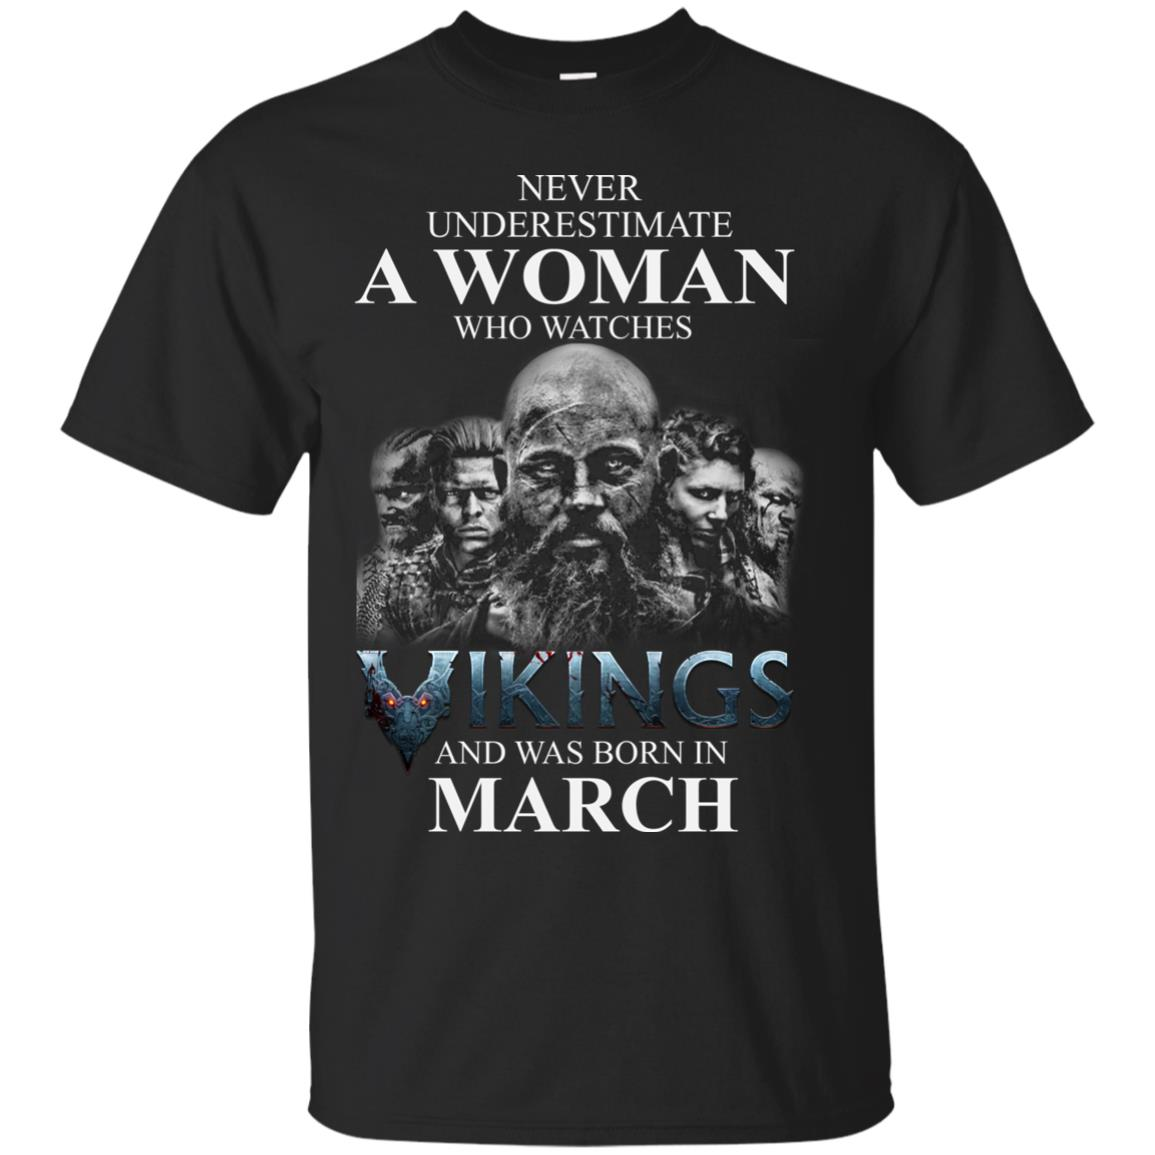 image 1327 - Never Underestimate A woman who watches Vikings and was born in March shirt